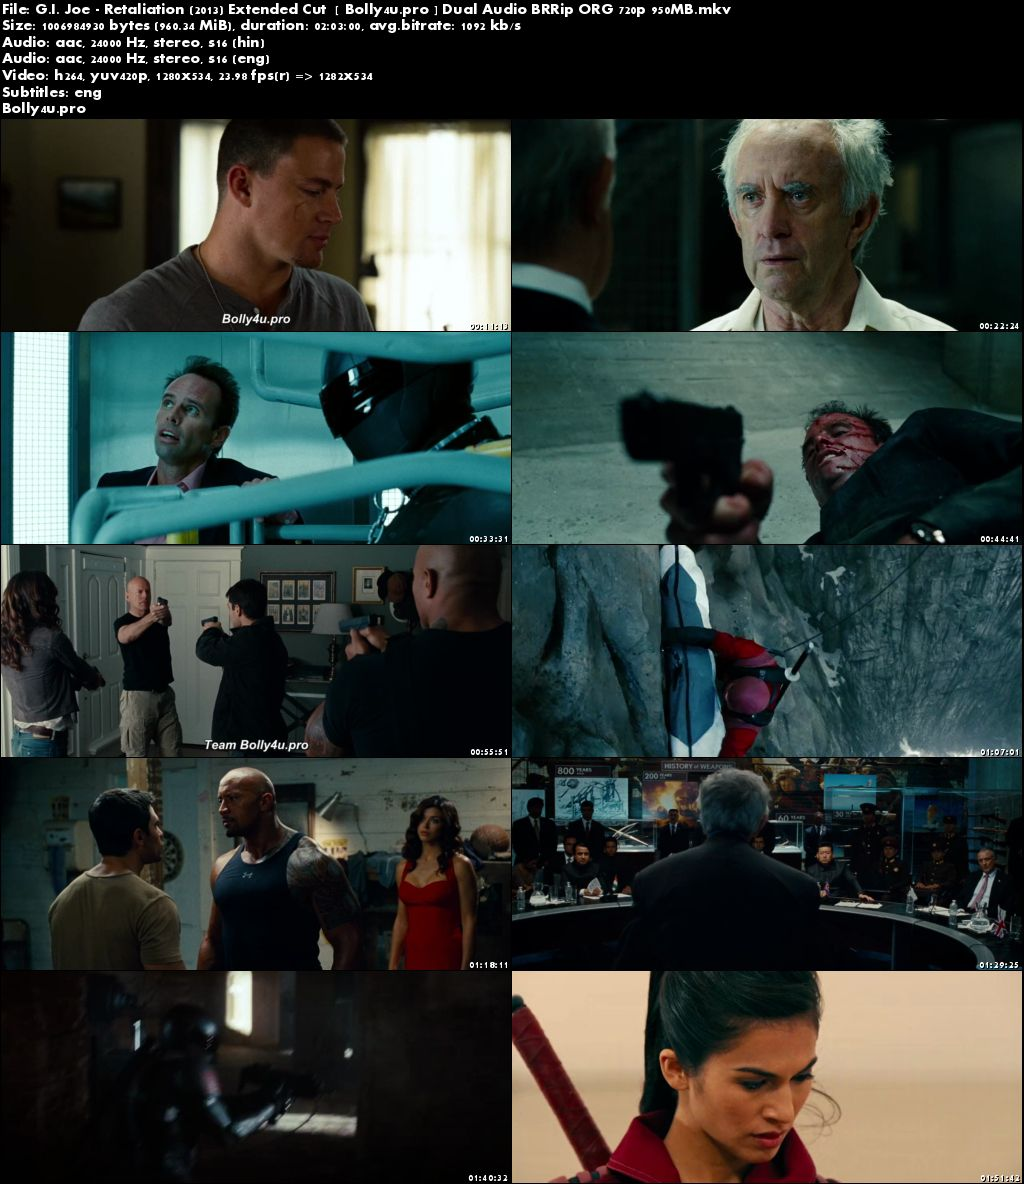 G I Joe Retaliation 2013 Extended Cut BRRip 950MB Hindi Dual Audio ORG 720p Download